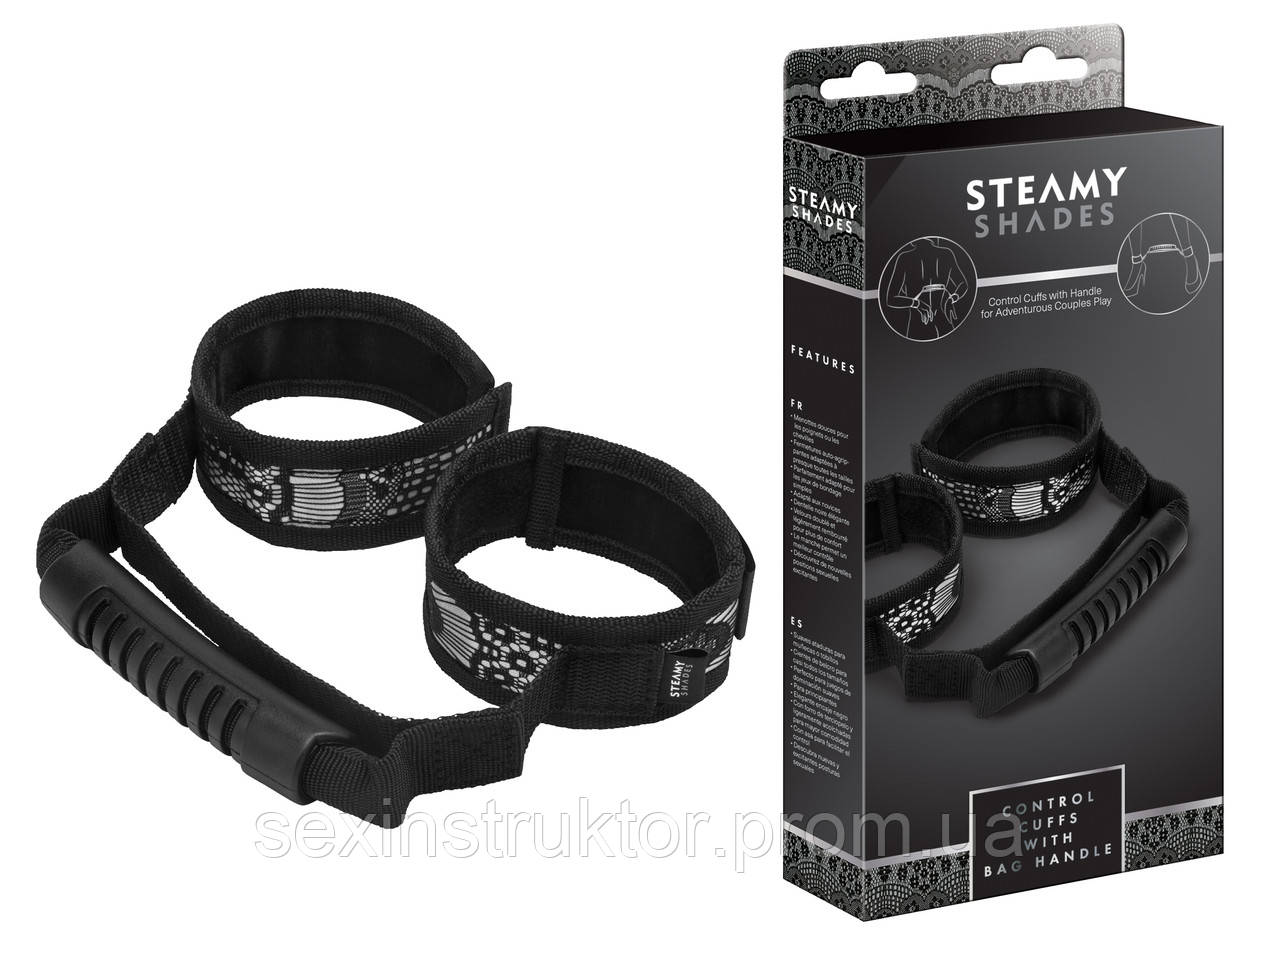 Наручники - STEAMY SHADES Control Cuffs with Bag Handle